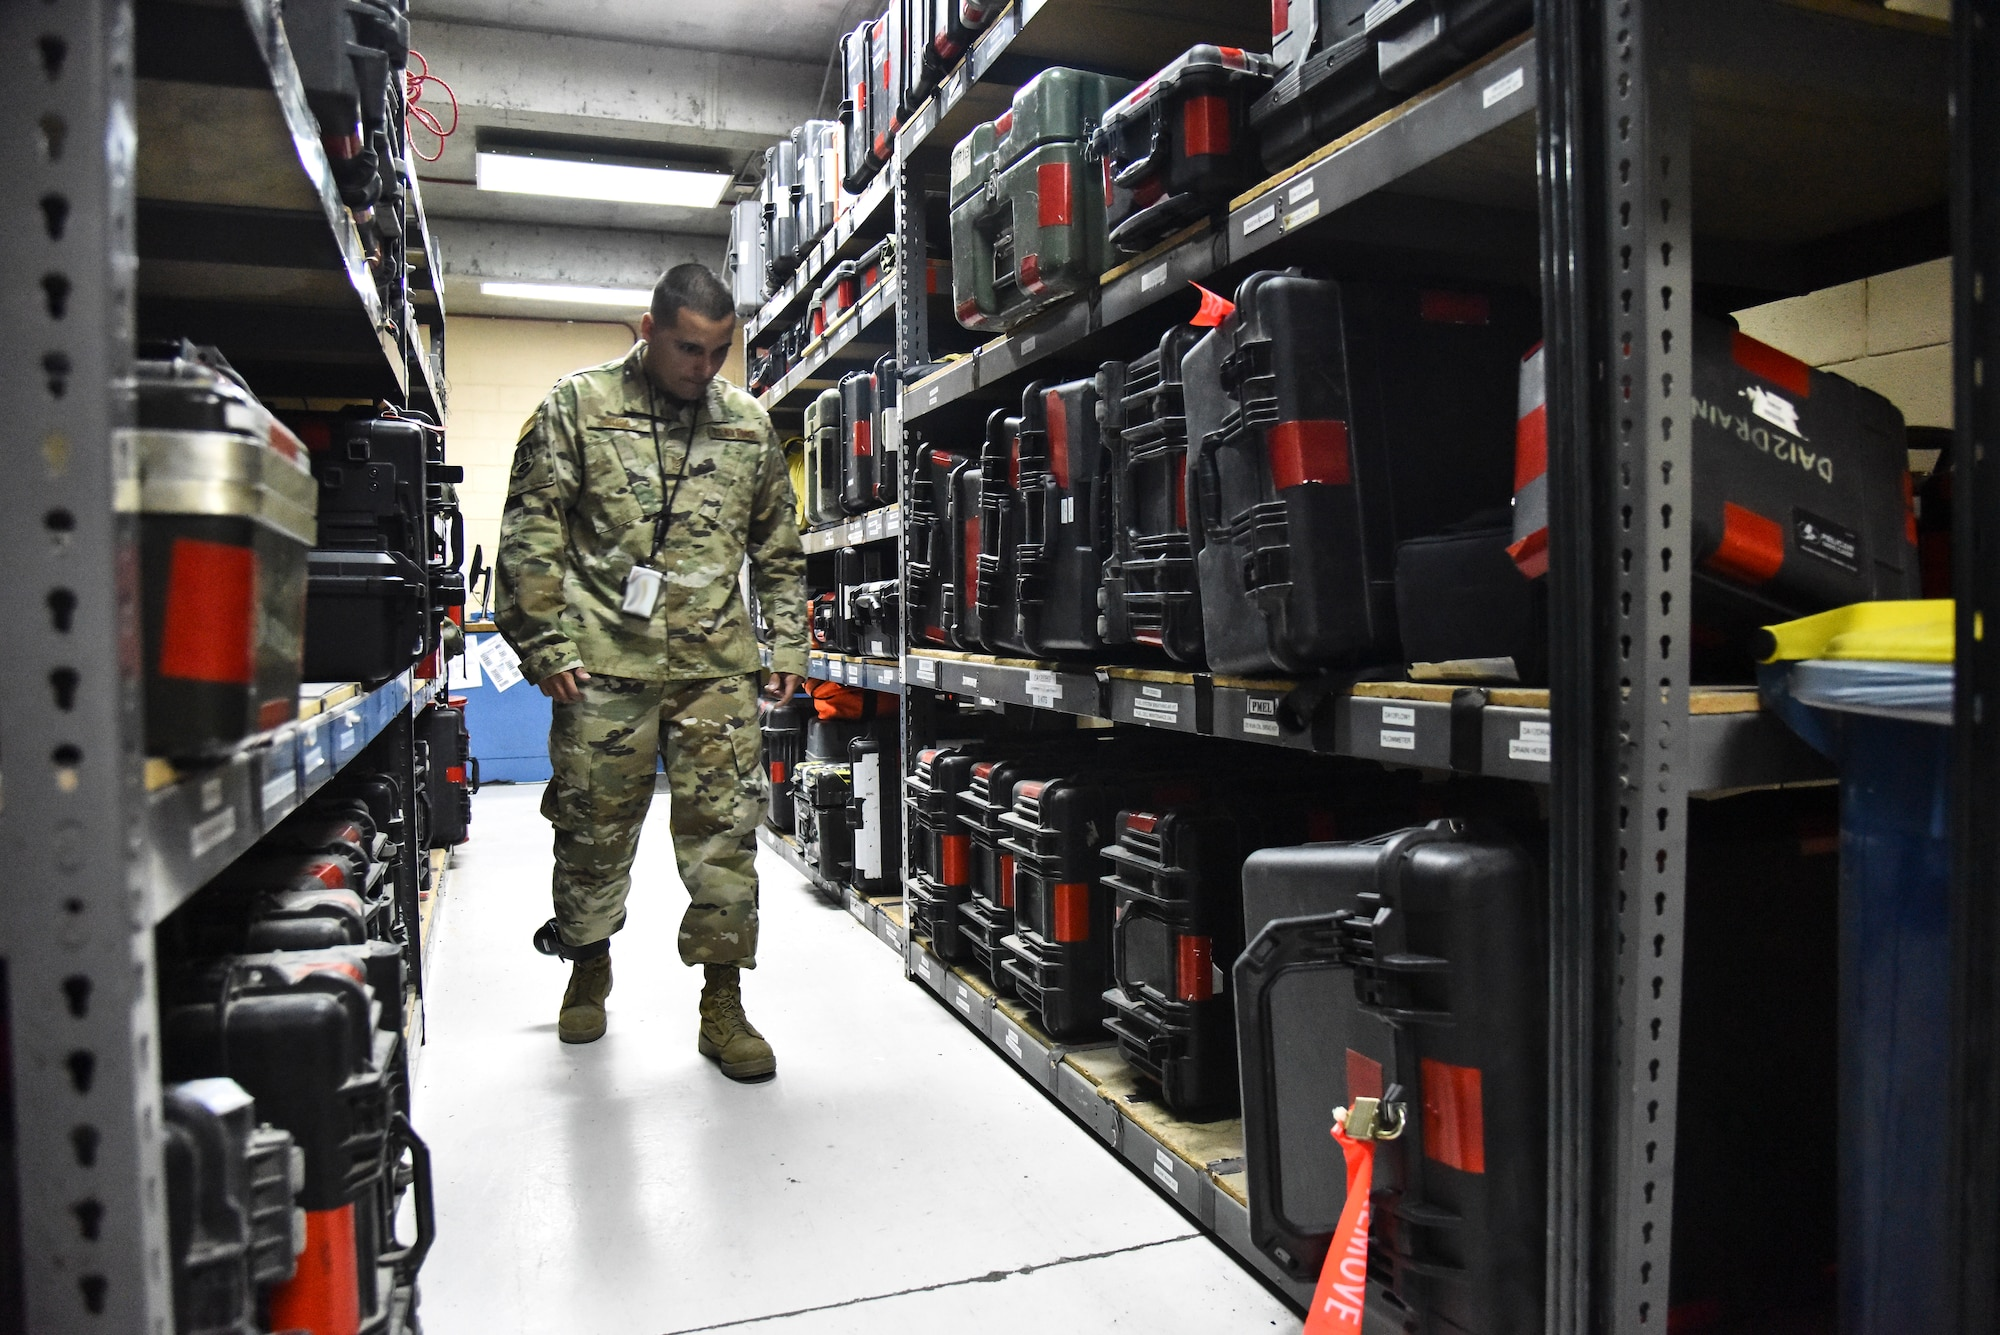 Staff Sgt. Luis Rosa, 380th Expeditionary Maintenance Group RQ-4 Global Hawk and U-2 Dragon Lady quality assurance inspector, performs an inspection with RQ-4 Global Hawk tool kits at Al Dhafra Air Base, United Arab Emirates, March 12, 2019. QA Airmen serve as the primary technical advisory agency in the maintenance organization, assisting maintenance supervision at all levels to identify, validate and/or resolve workmanship, proficiency and/or compliance issues impacting mission generation. (U.S. Air Force photo by Senior Airman Mya M. Crosby)